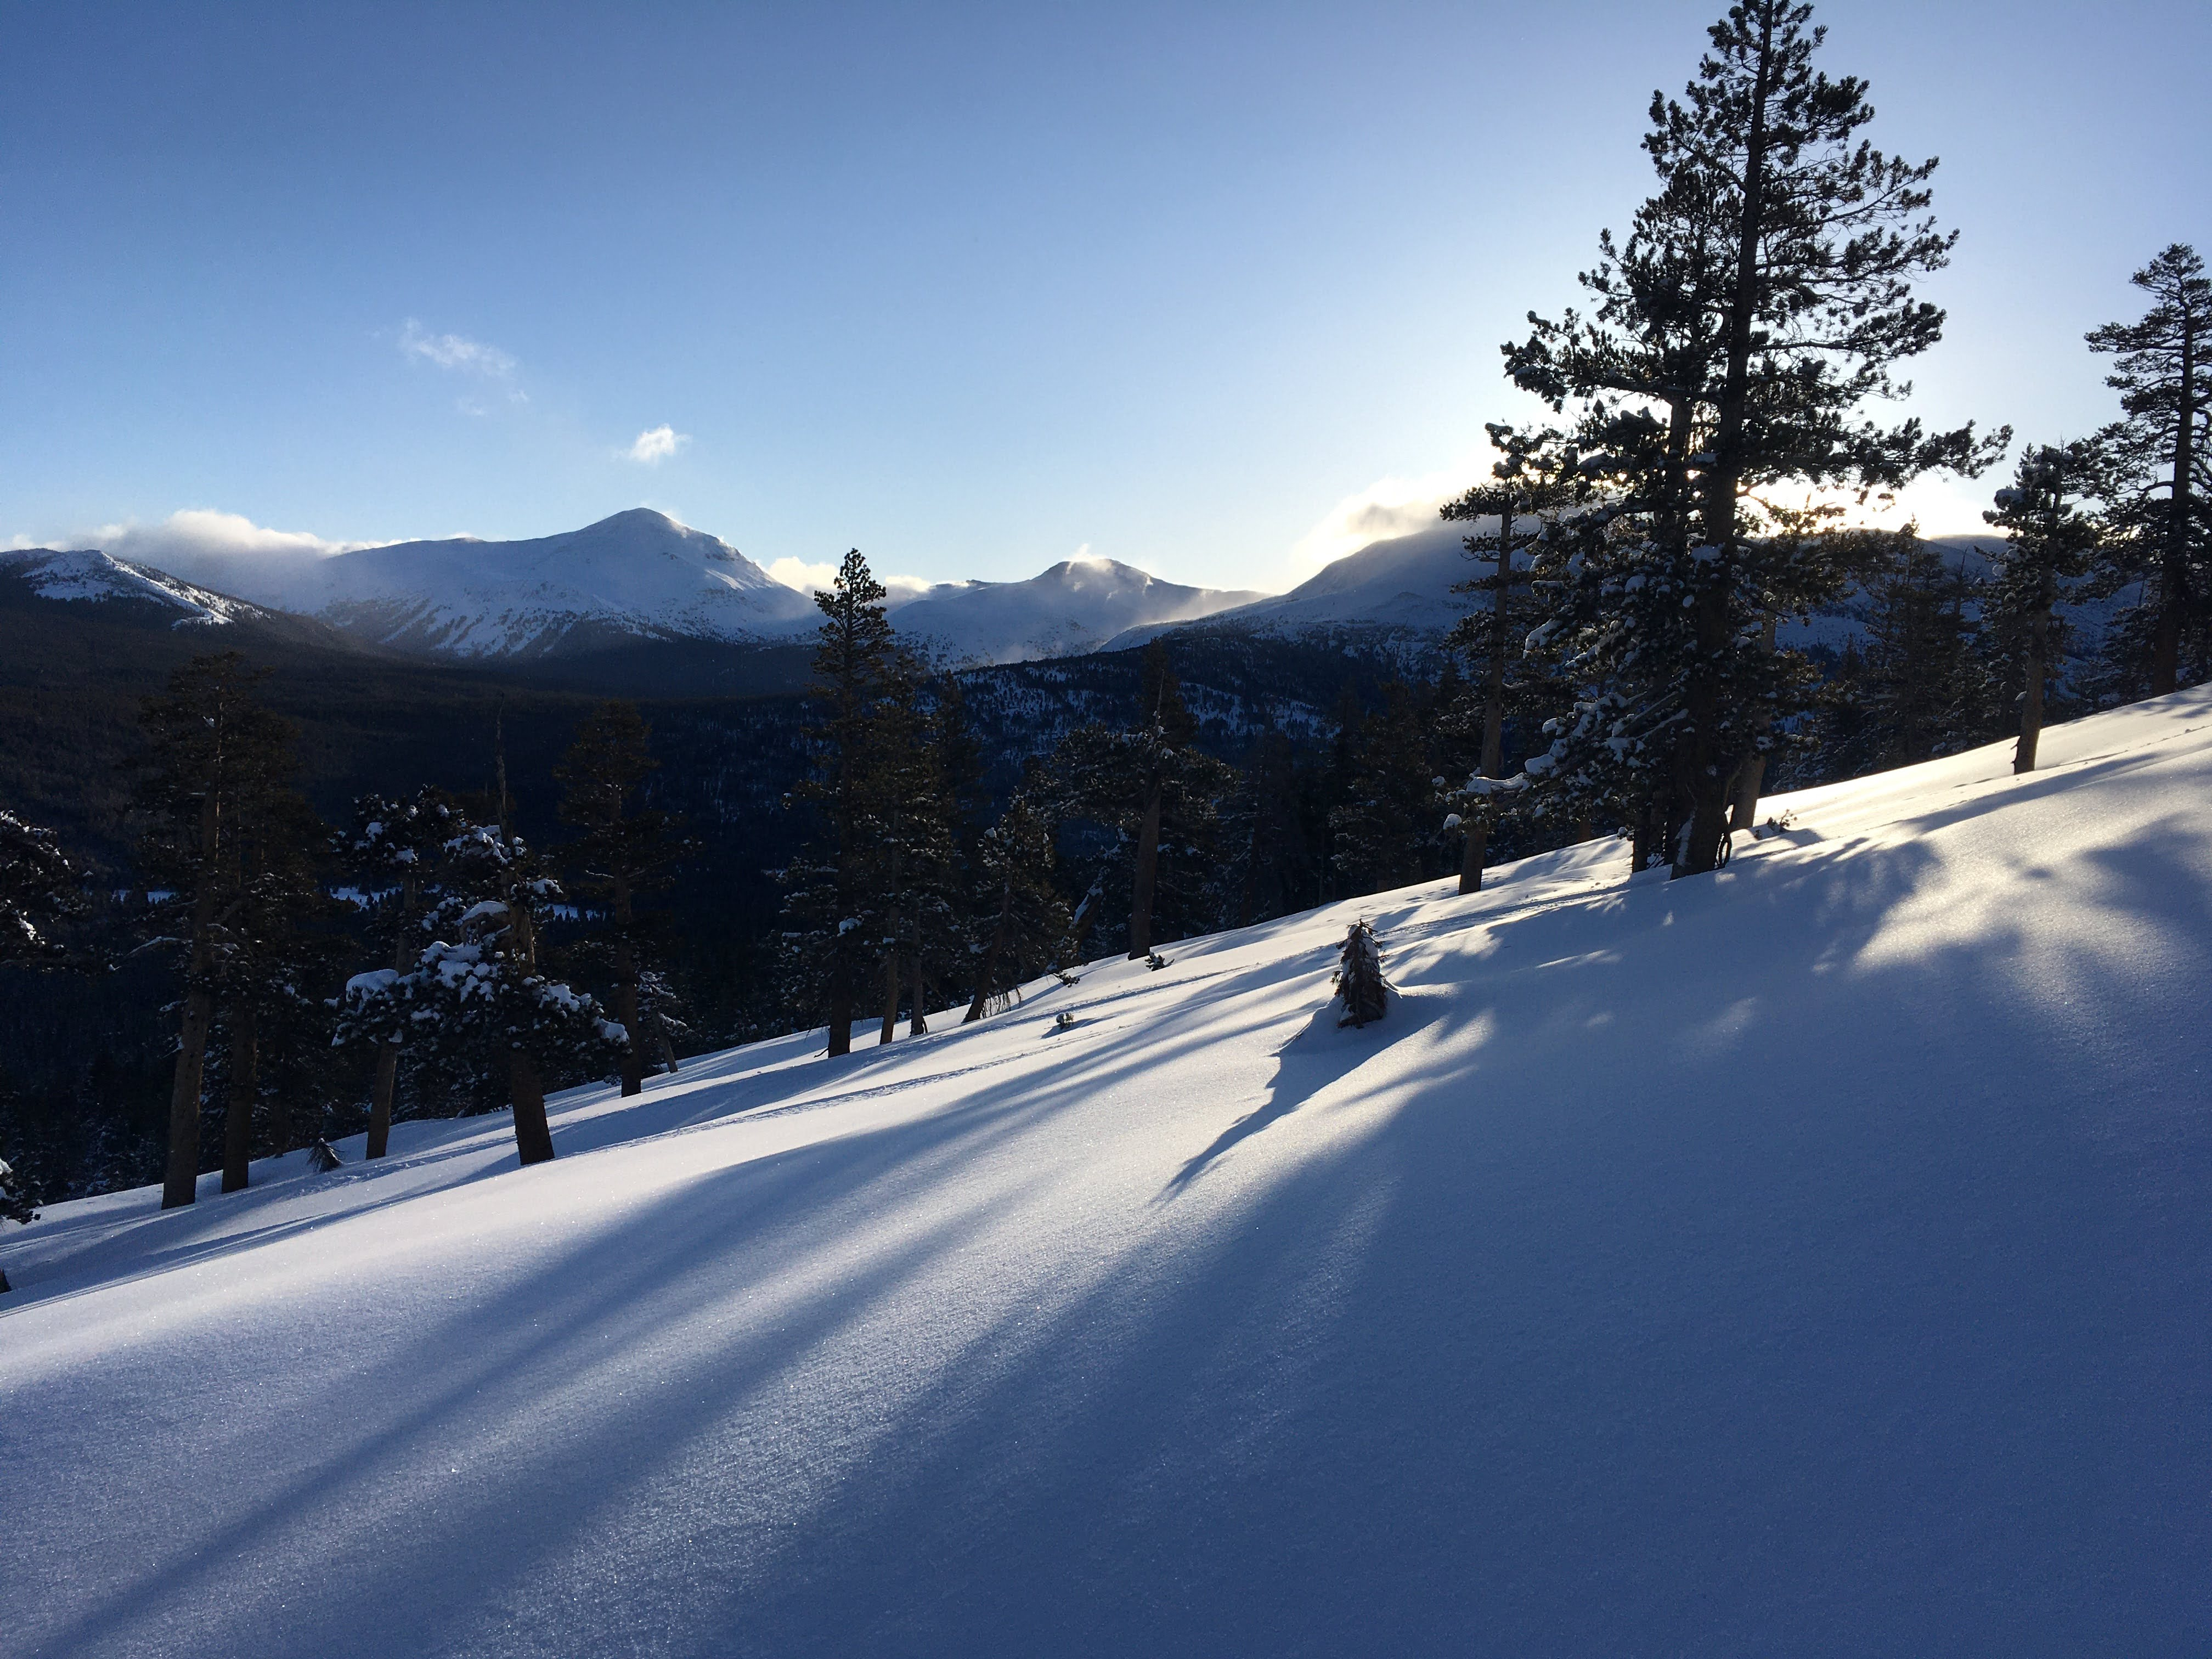 A fresh blanket of snow covers the hills above Tuolumne Meadows on March 21st, 2021